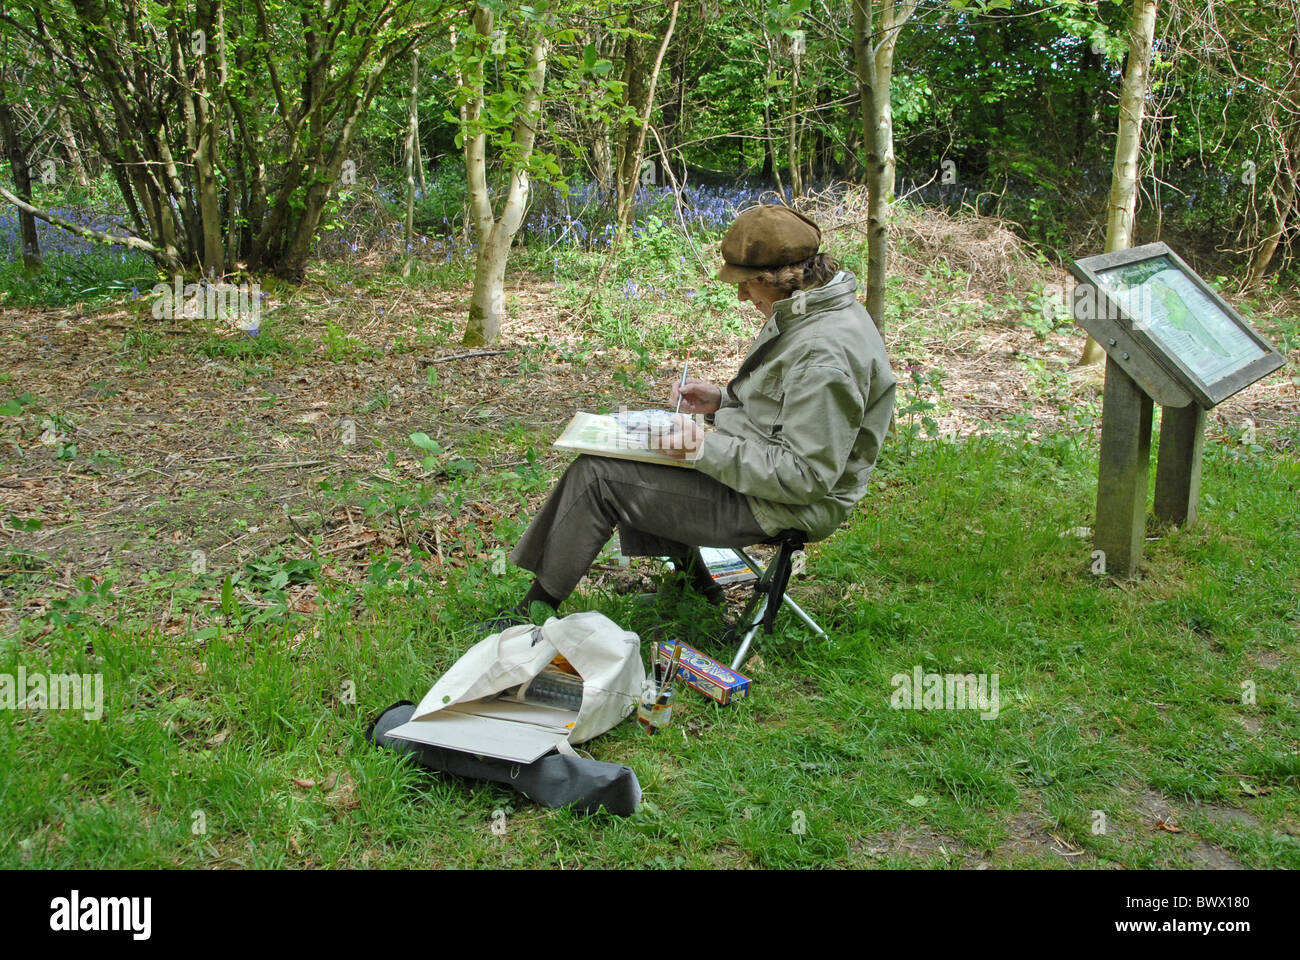 artist woodland wood painting watercolour woodland trust buckinghamshire chorleywood hobby sketching outdoor activity - Stock Image